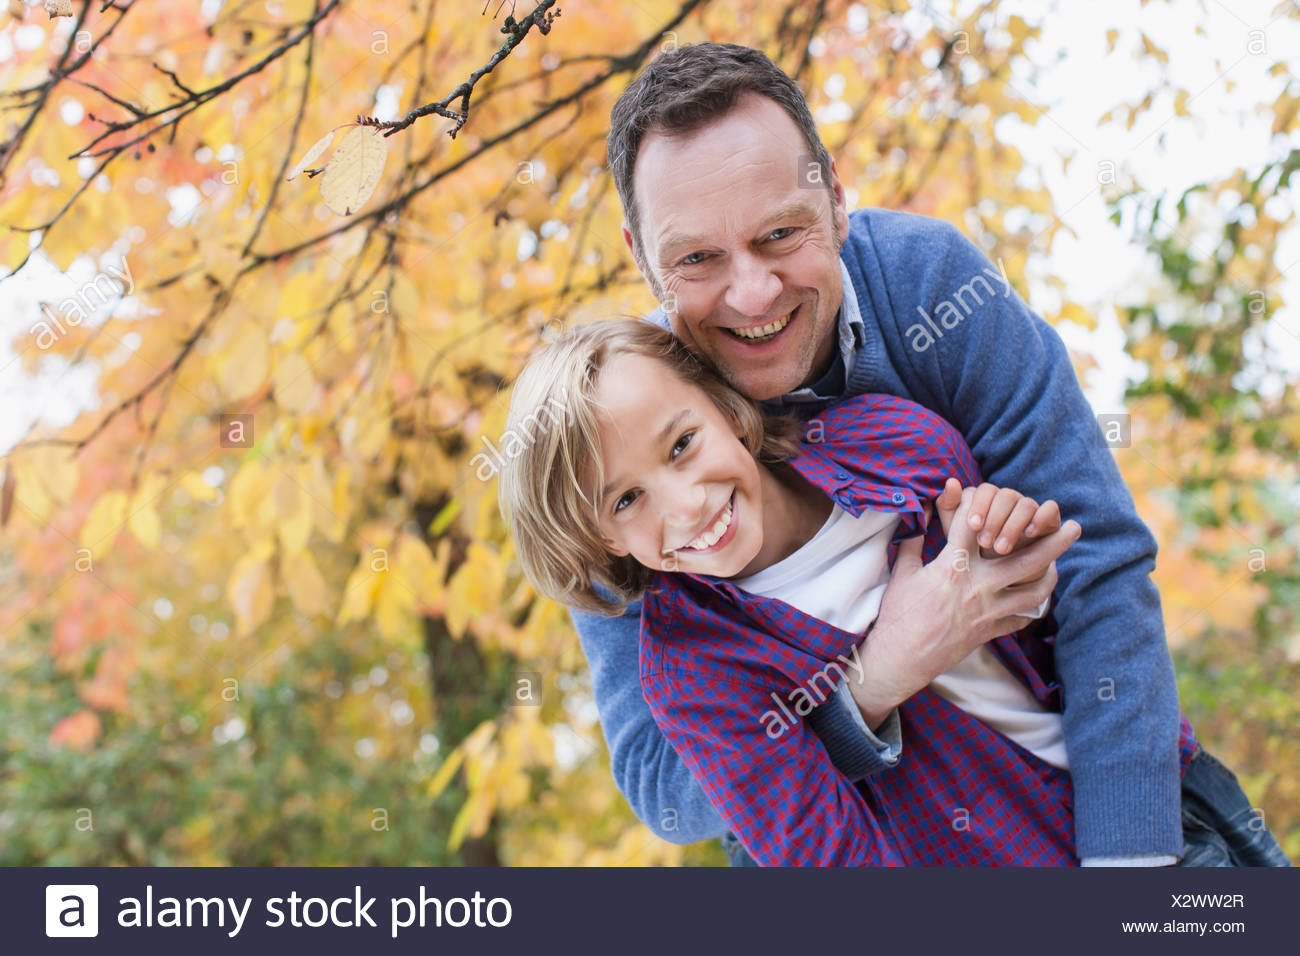 Germany, Leipzig, Father and son having fun, smiling - Stock Image